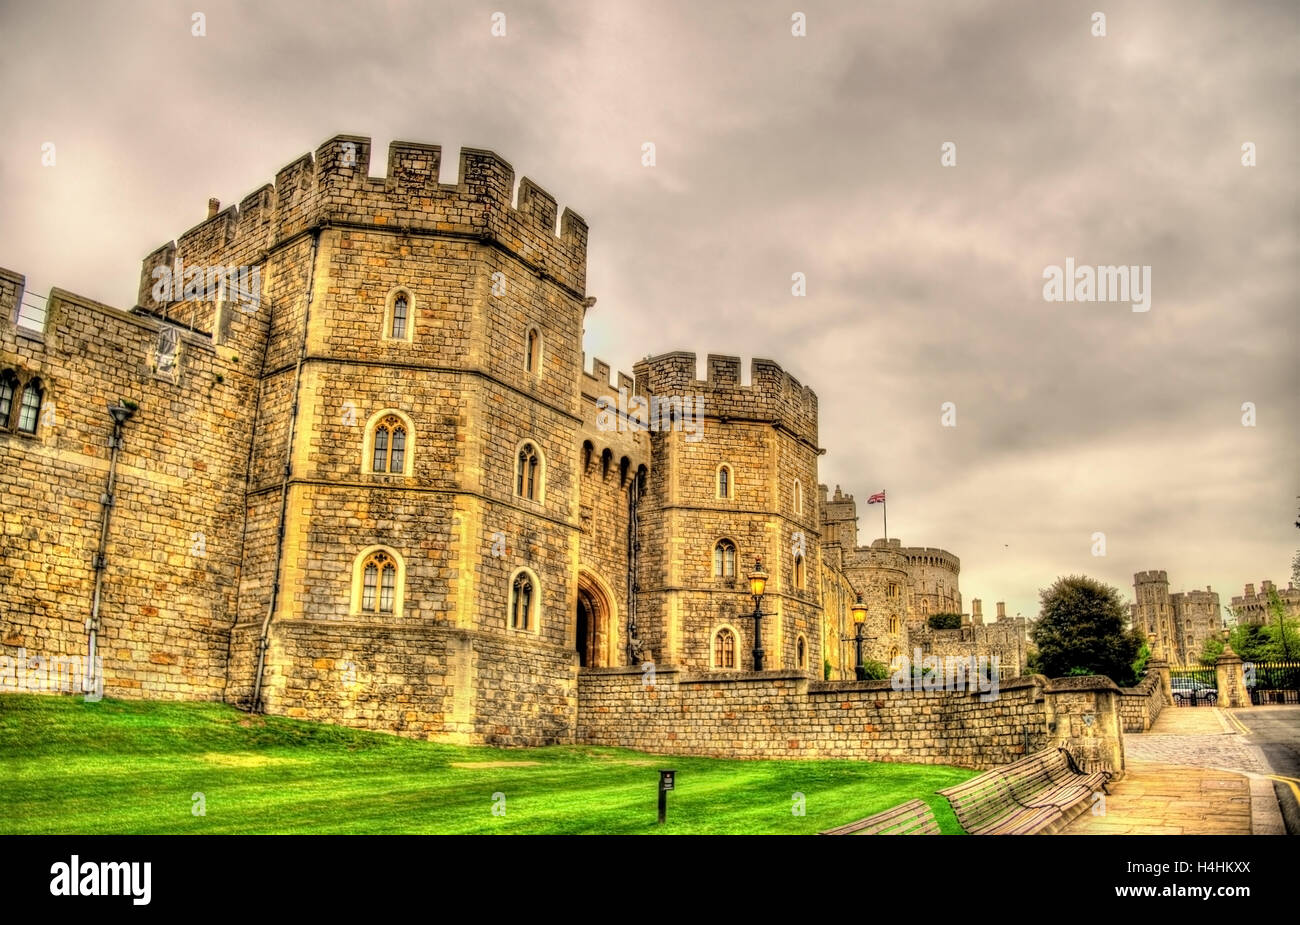 Gate of Windsor Castle - England, Great Britain - Stock Image